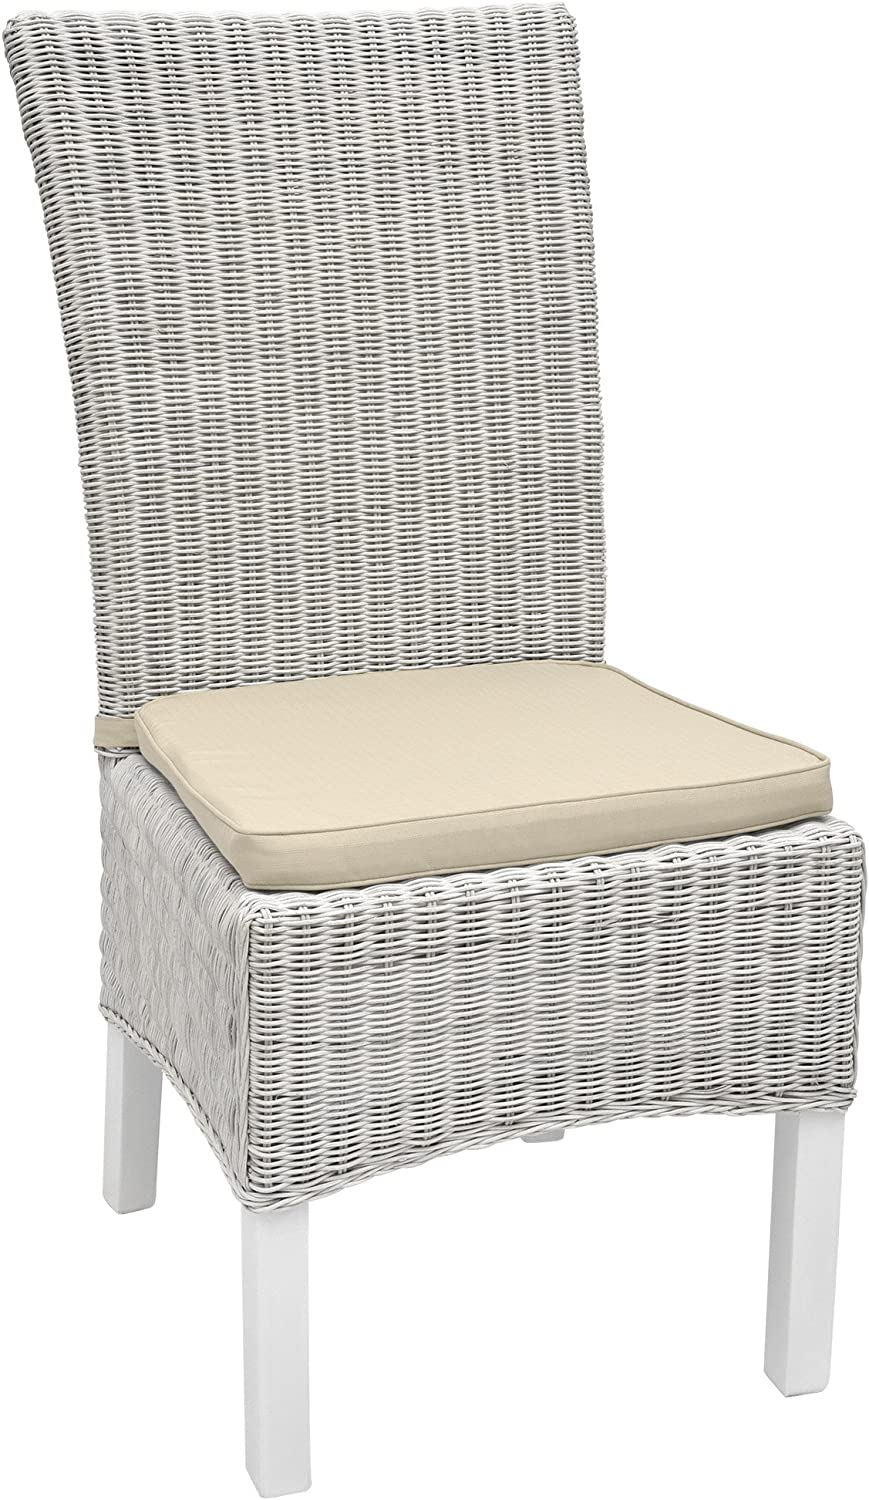 Beautissu Seat Cushion Pia Chair Pad for Rattan Garden /& Dining Chairs 45 x 40 x 5 cm Removable Covers Natural